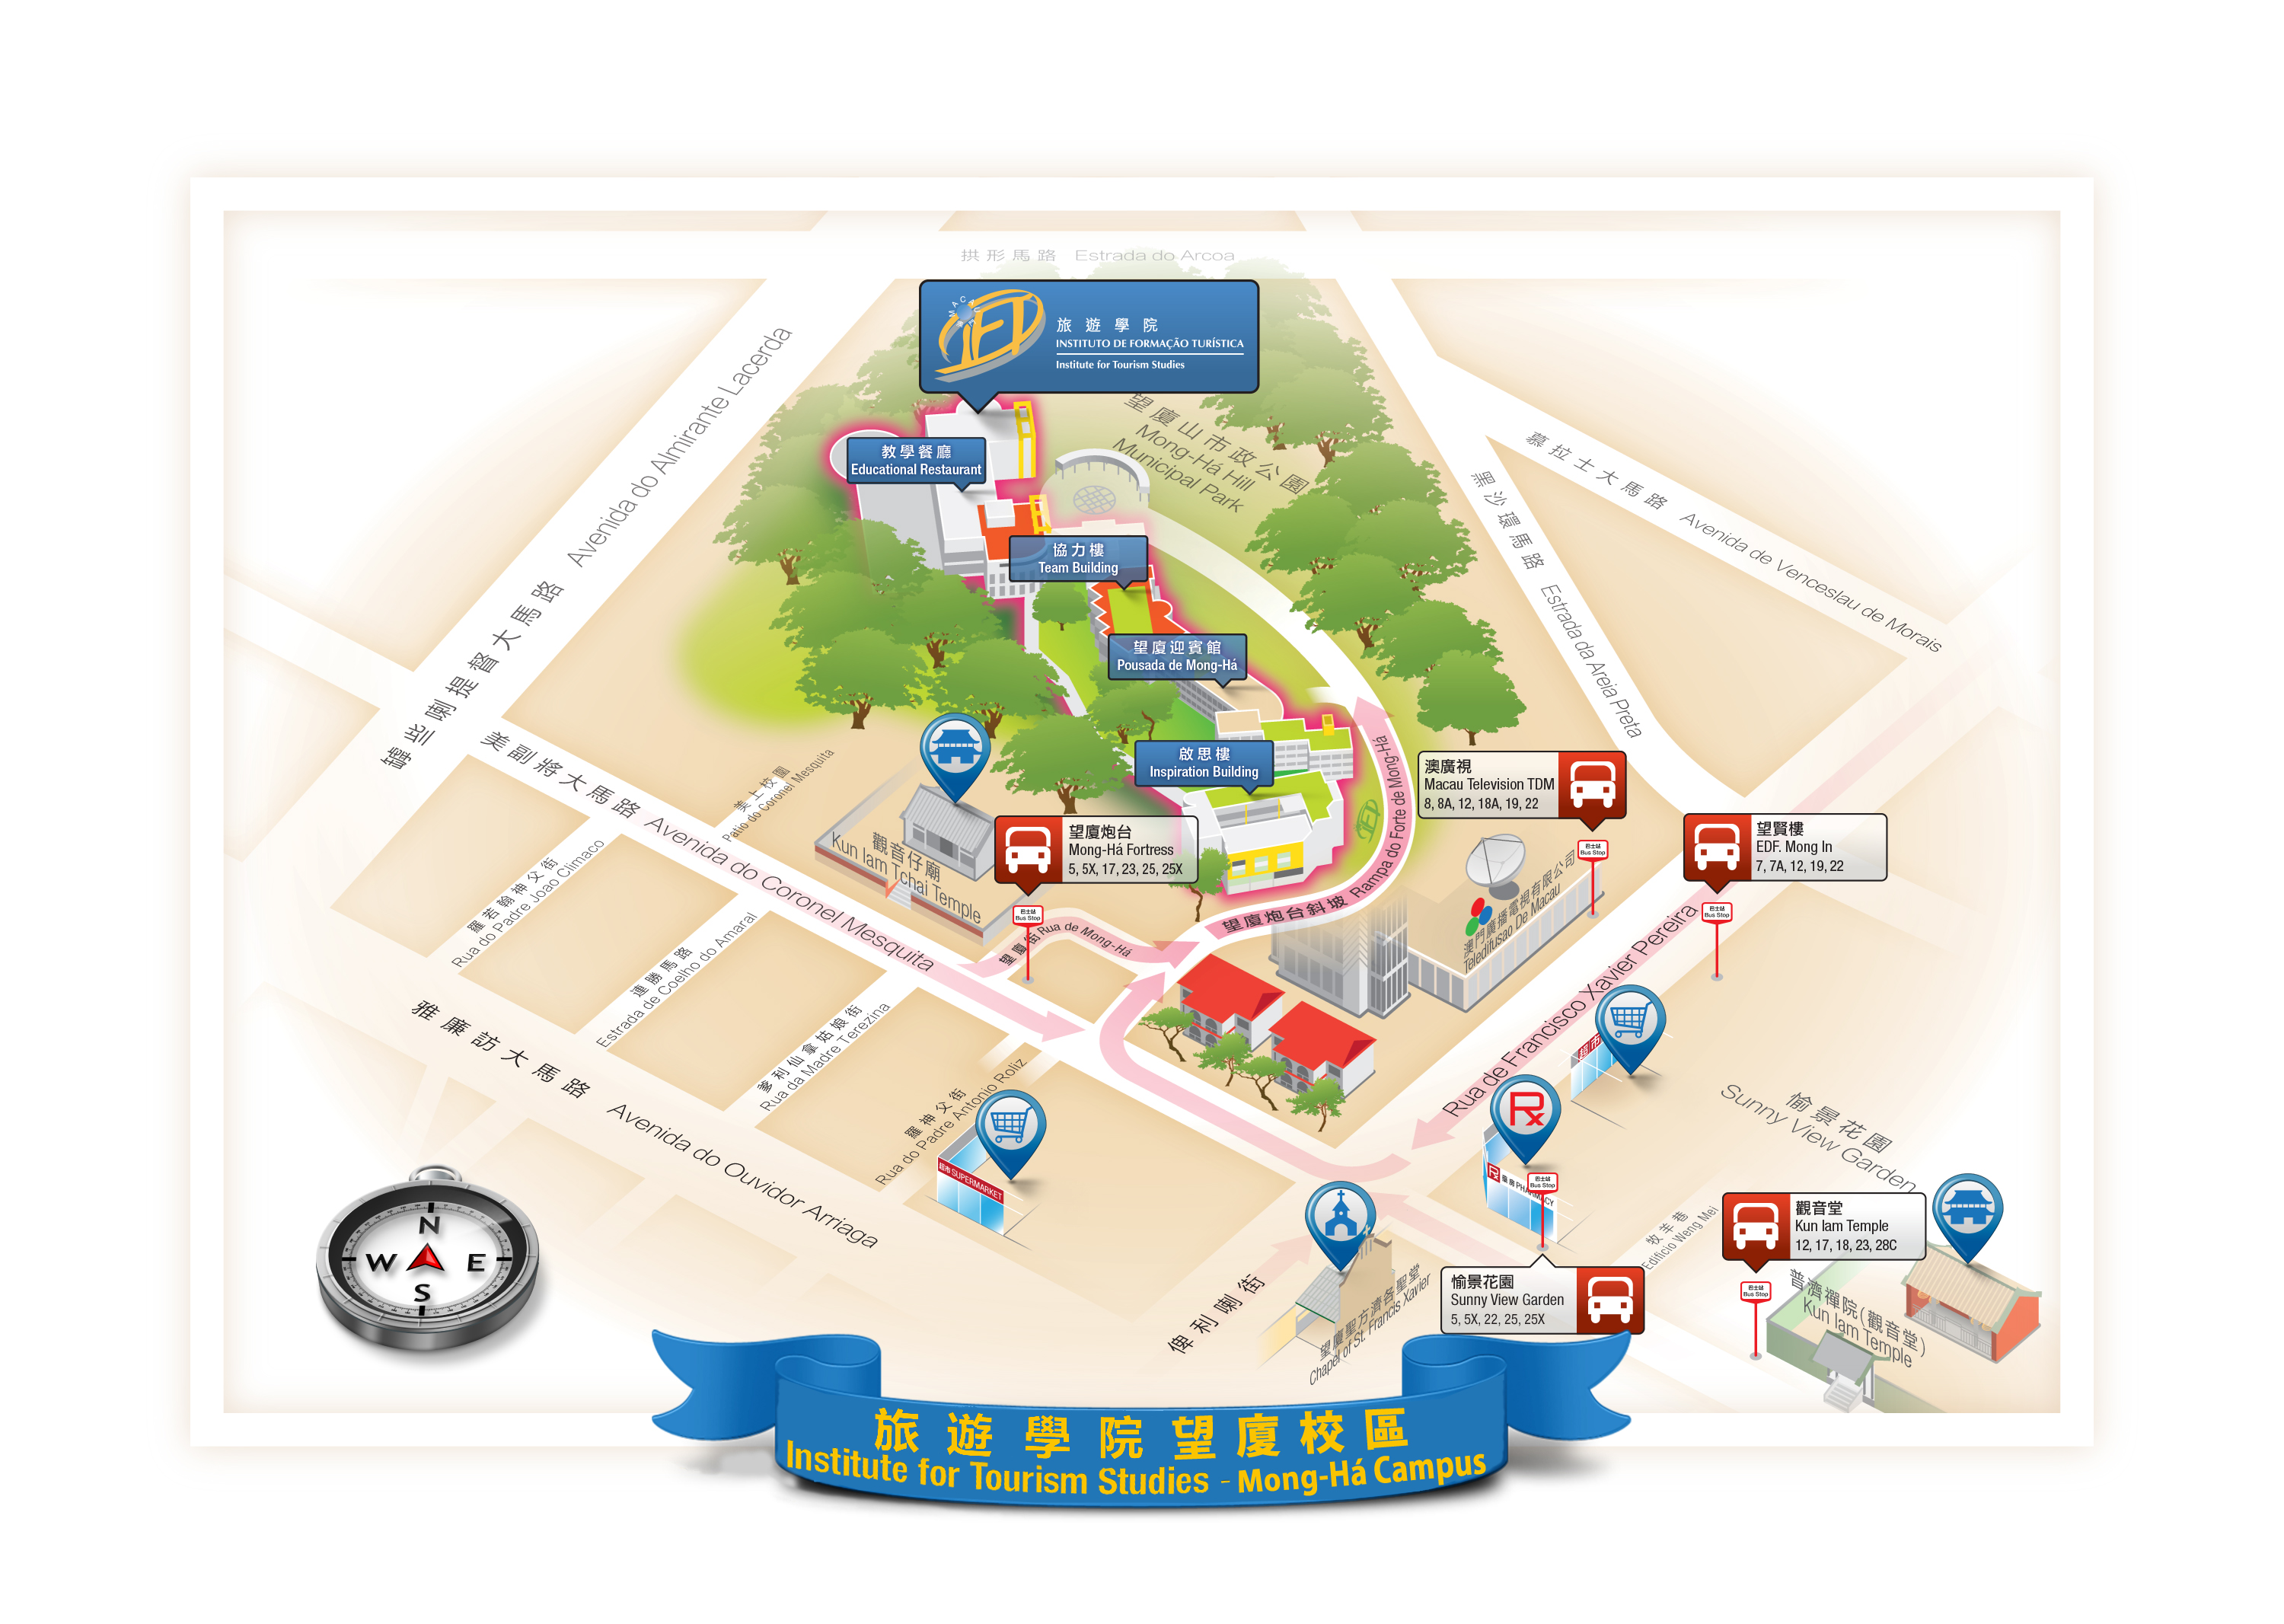 2) Map to show how to reach Macau IFT copy